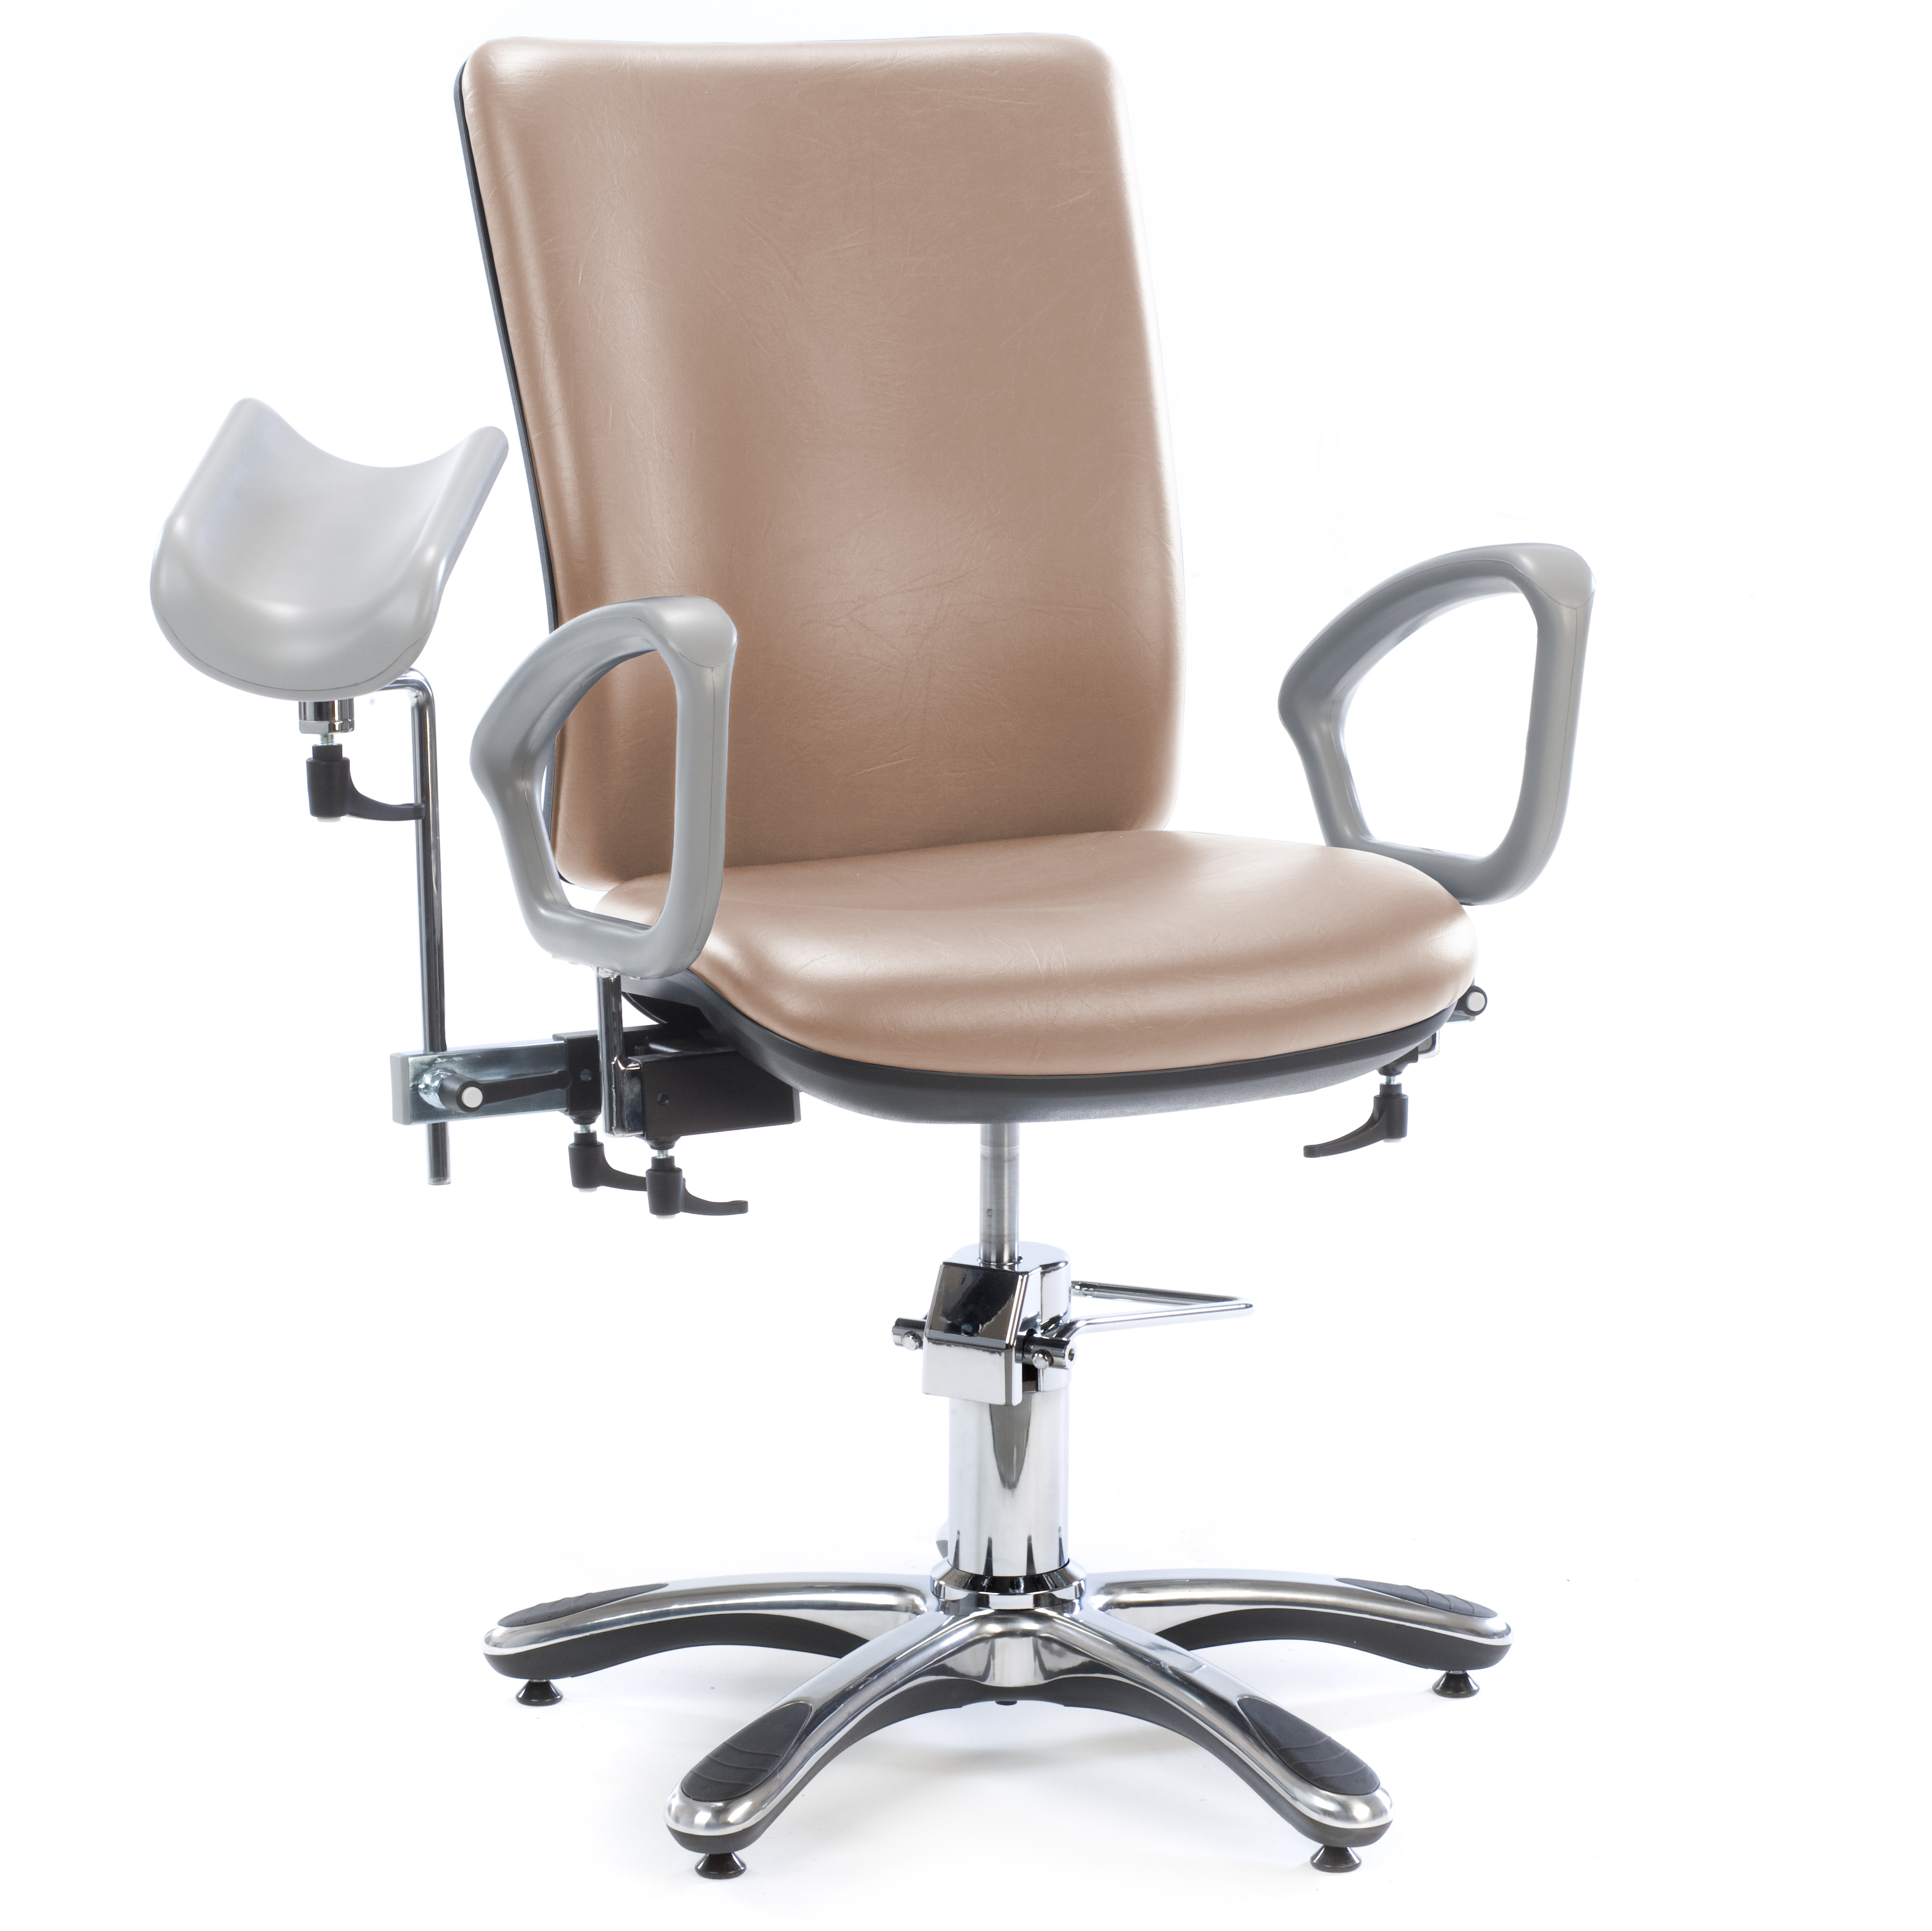 Height Adjustable Phlebotomy Chair Seers Medical The Uk